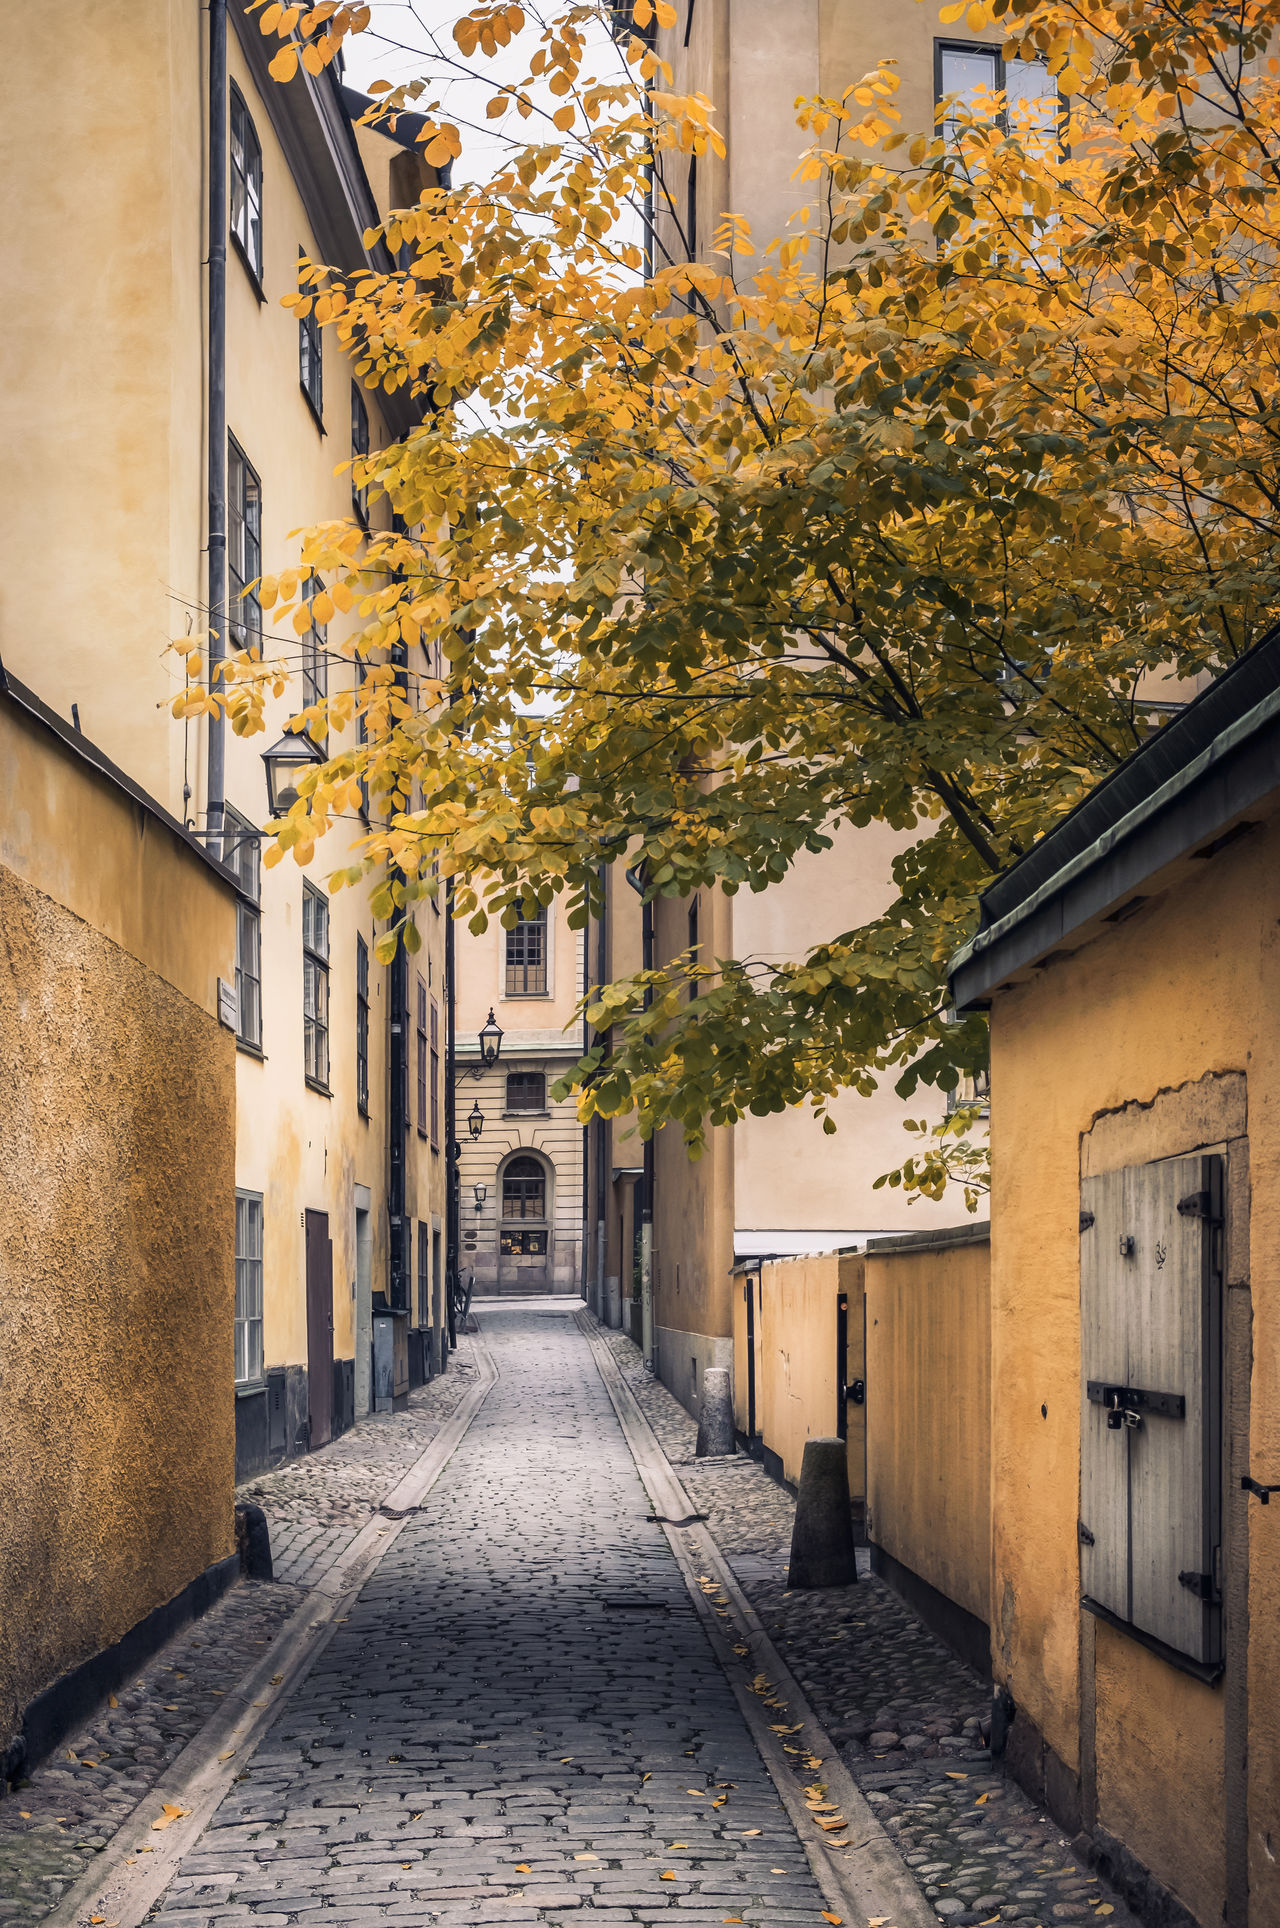 Idyllic street in old town Stockholm, Sweden Architecture Autumn Building Exterior Built Structure City Cobblestone Colors Cozy Day Holiday Idyllic Leaf Leaves Light And Shadow No People Old Town Outdoors Stockholm Street Streets Tourism Tourist Travel Destinations Tree Windows